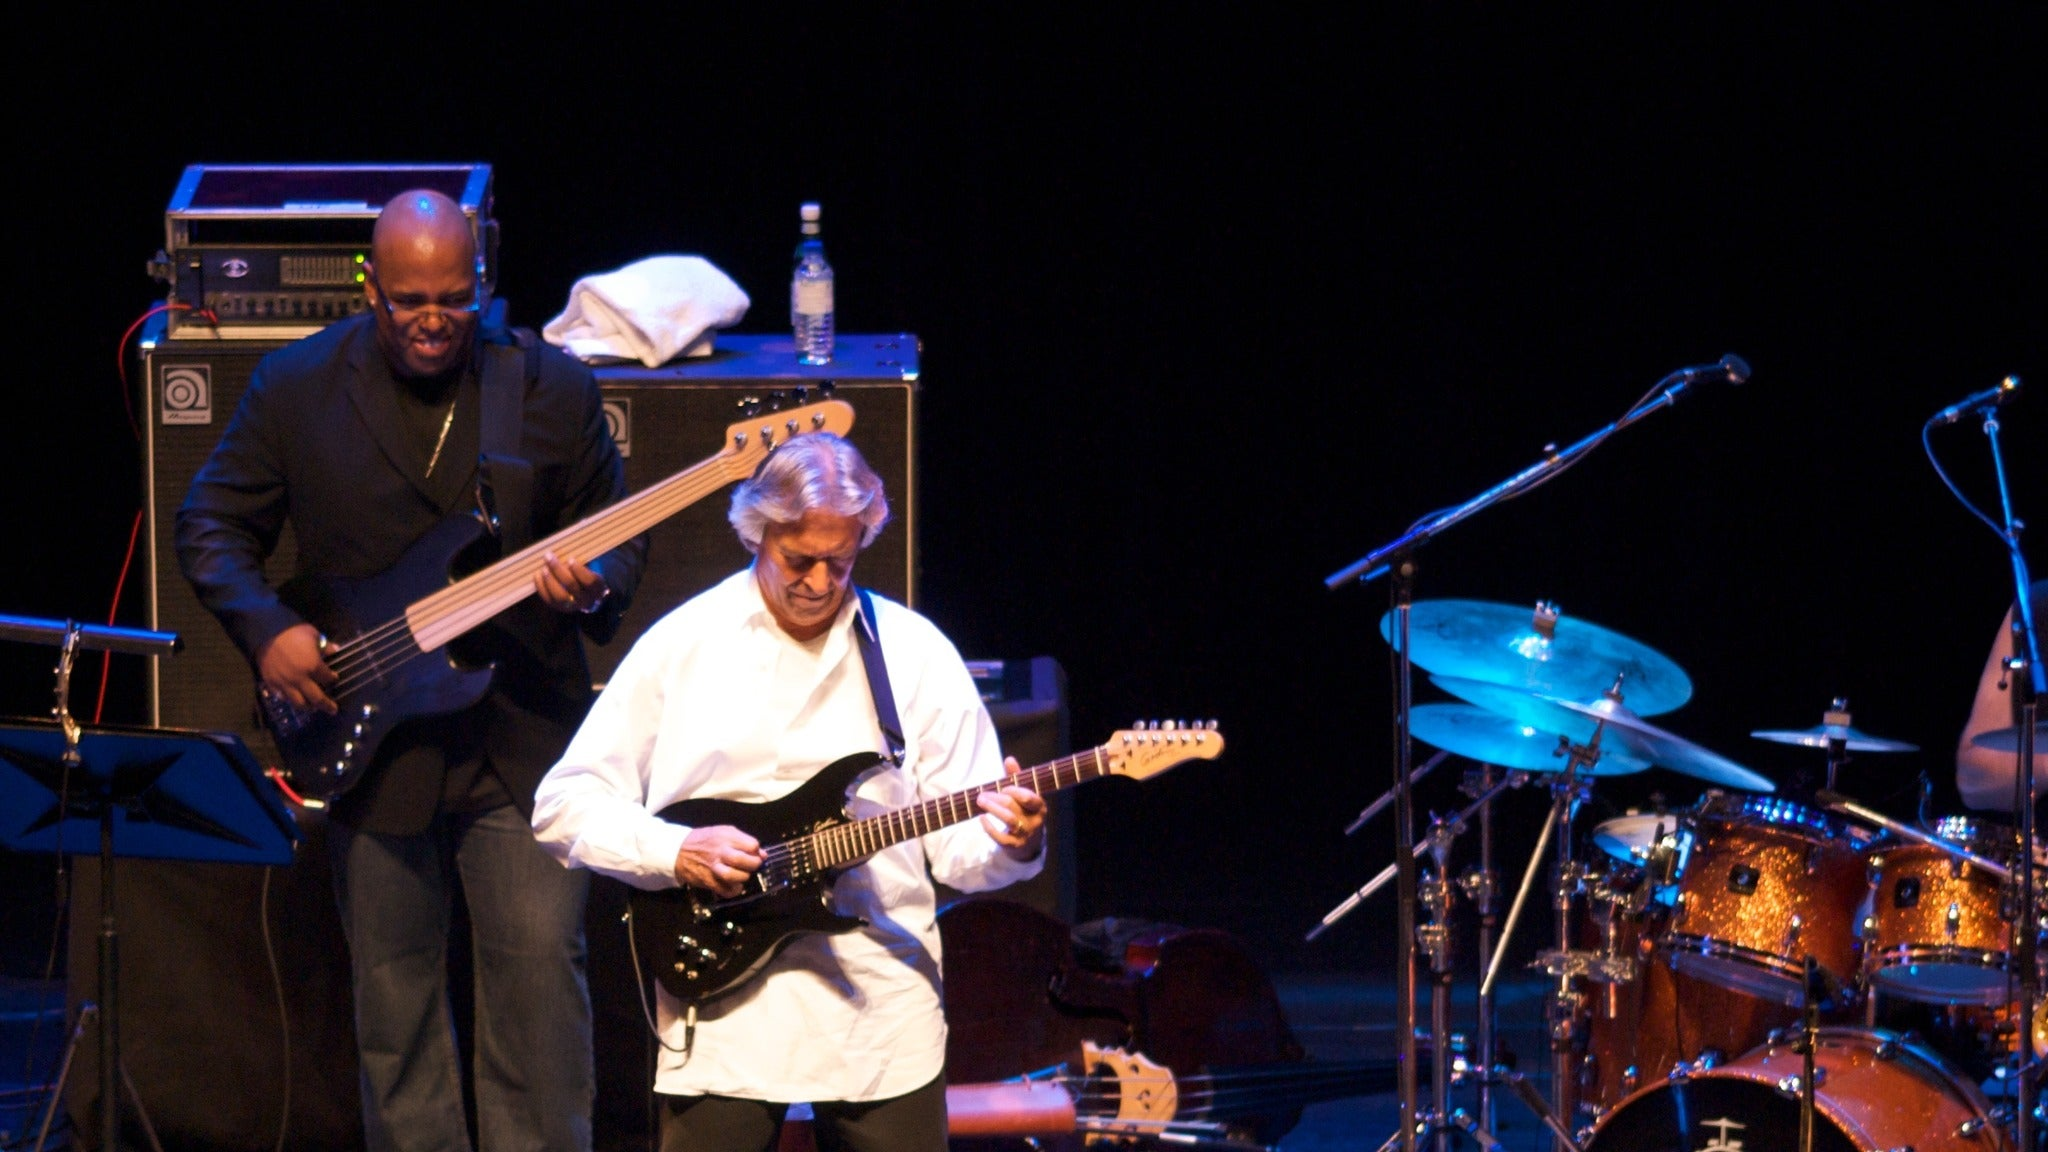 John McLaughlin at The Joy Theater